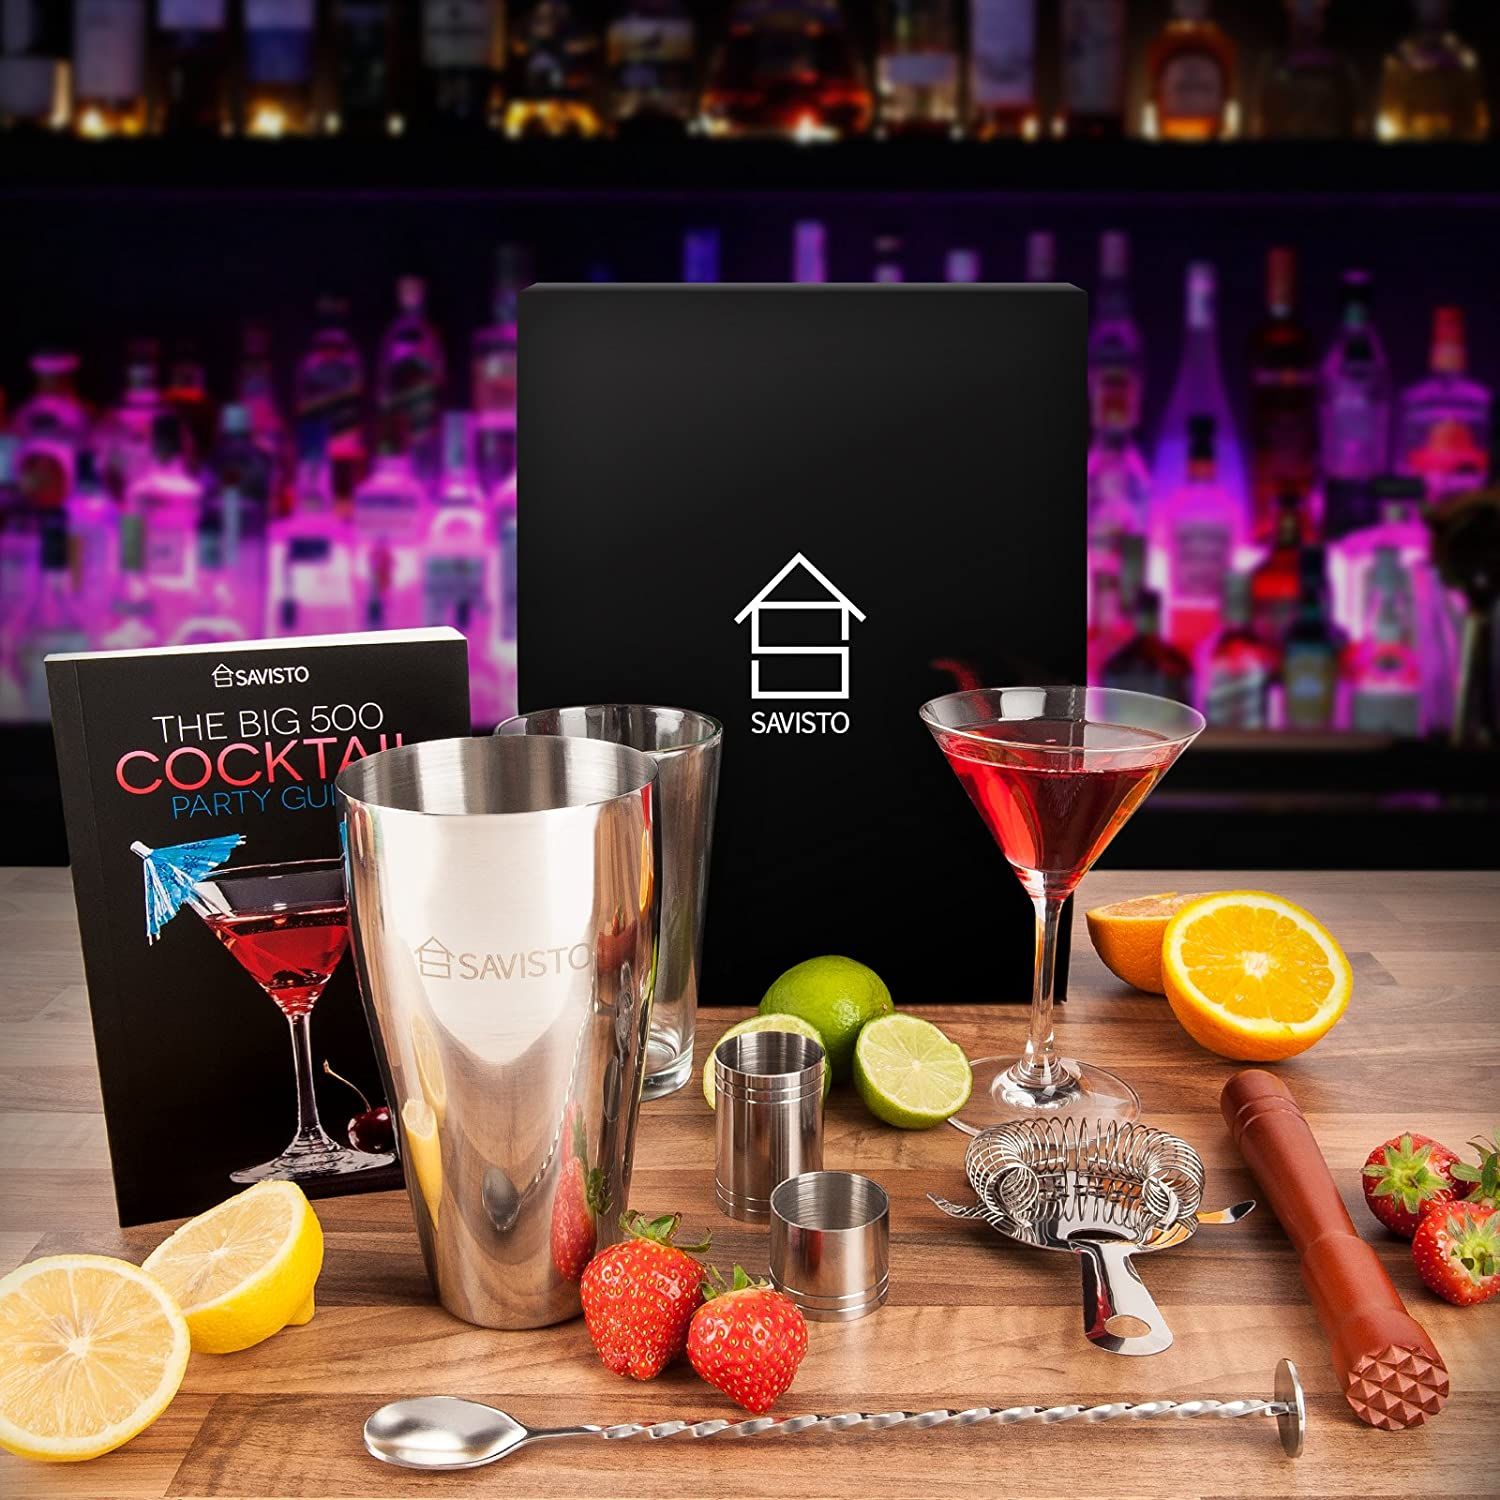 Go a step further and even buy her a cocktail mixing kit, or some cute items to use at a dinner party such as cocktail or wine glasses!